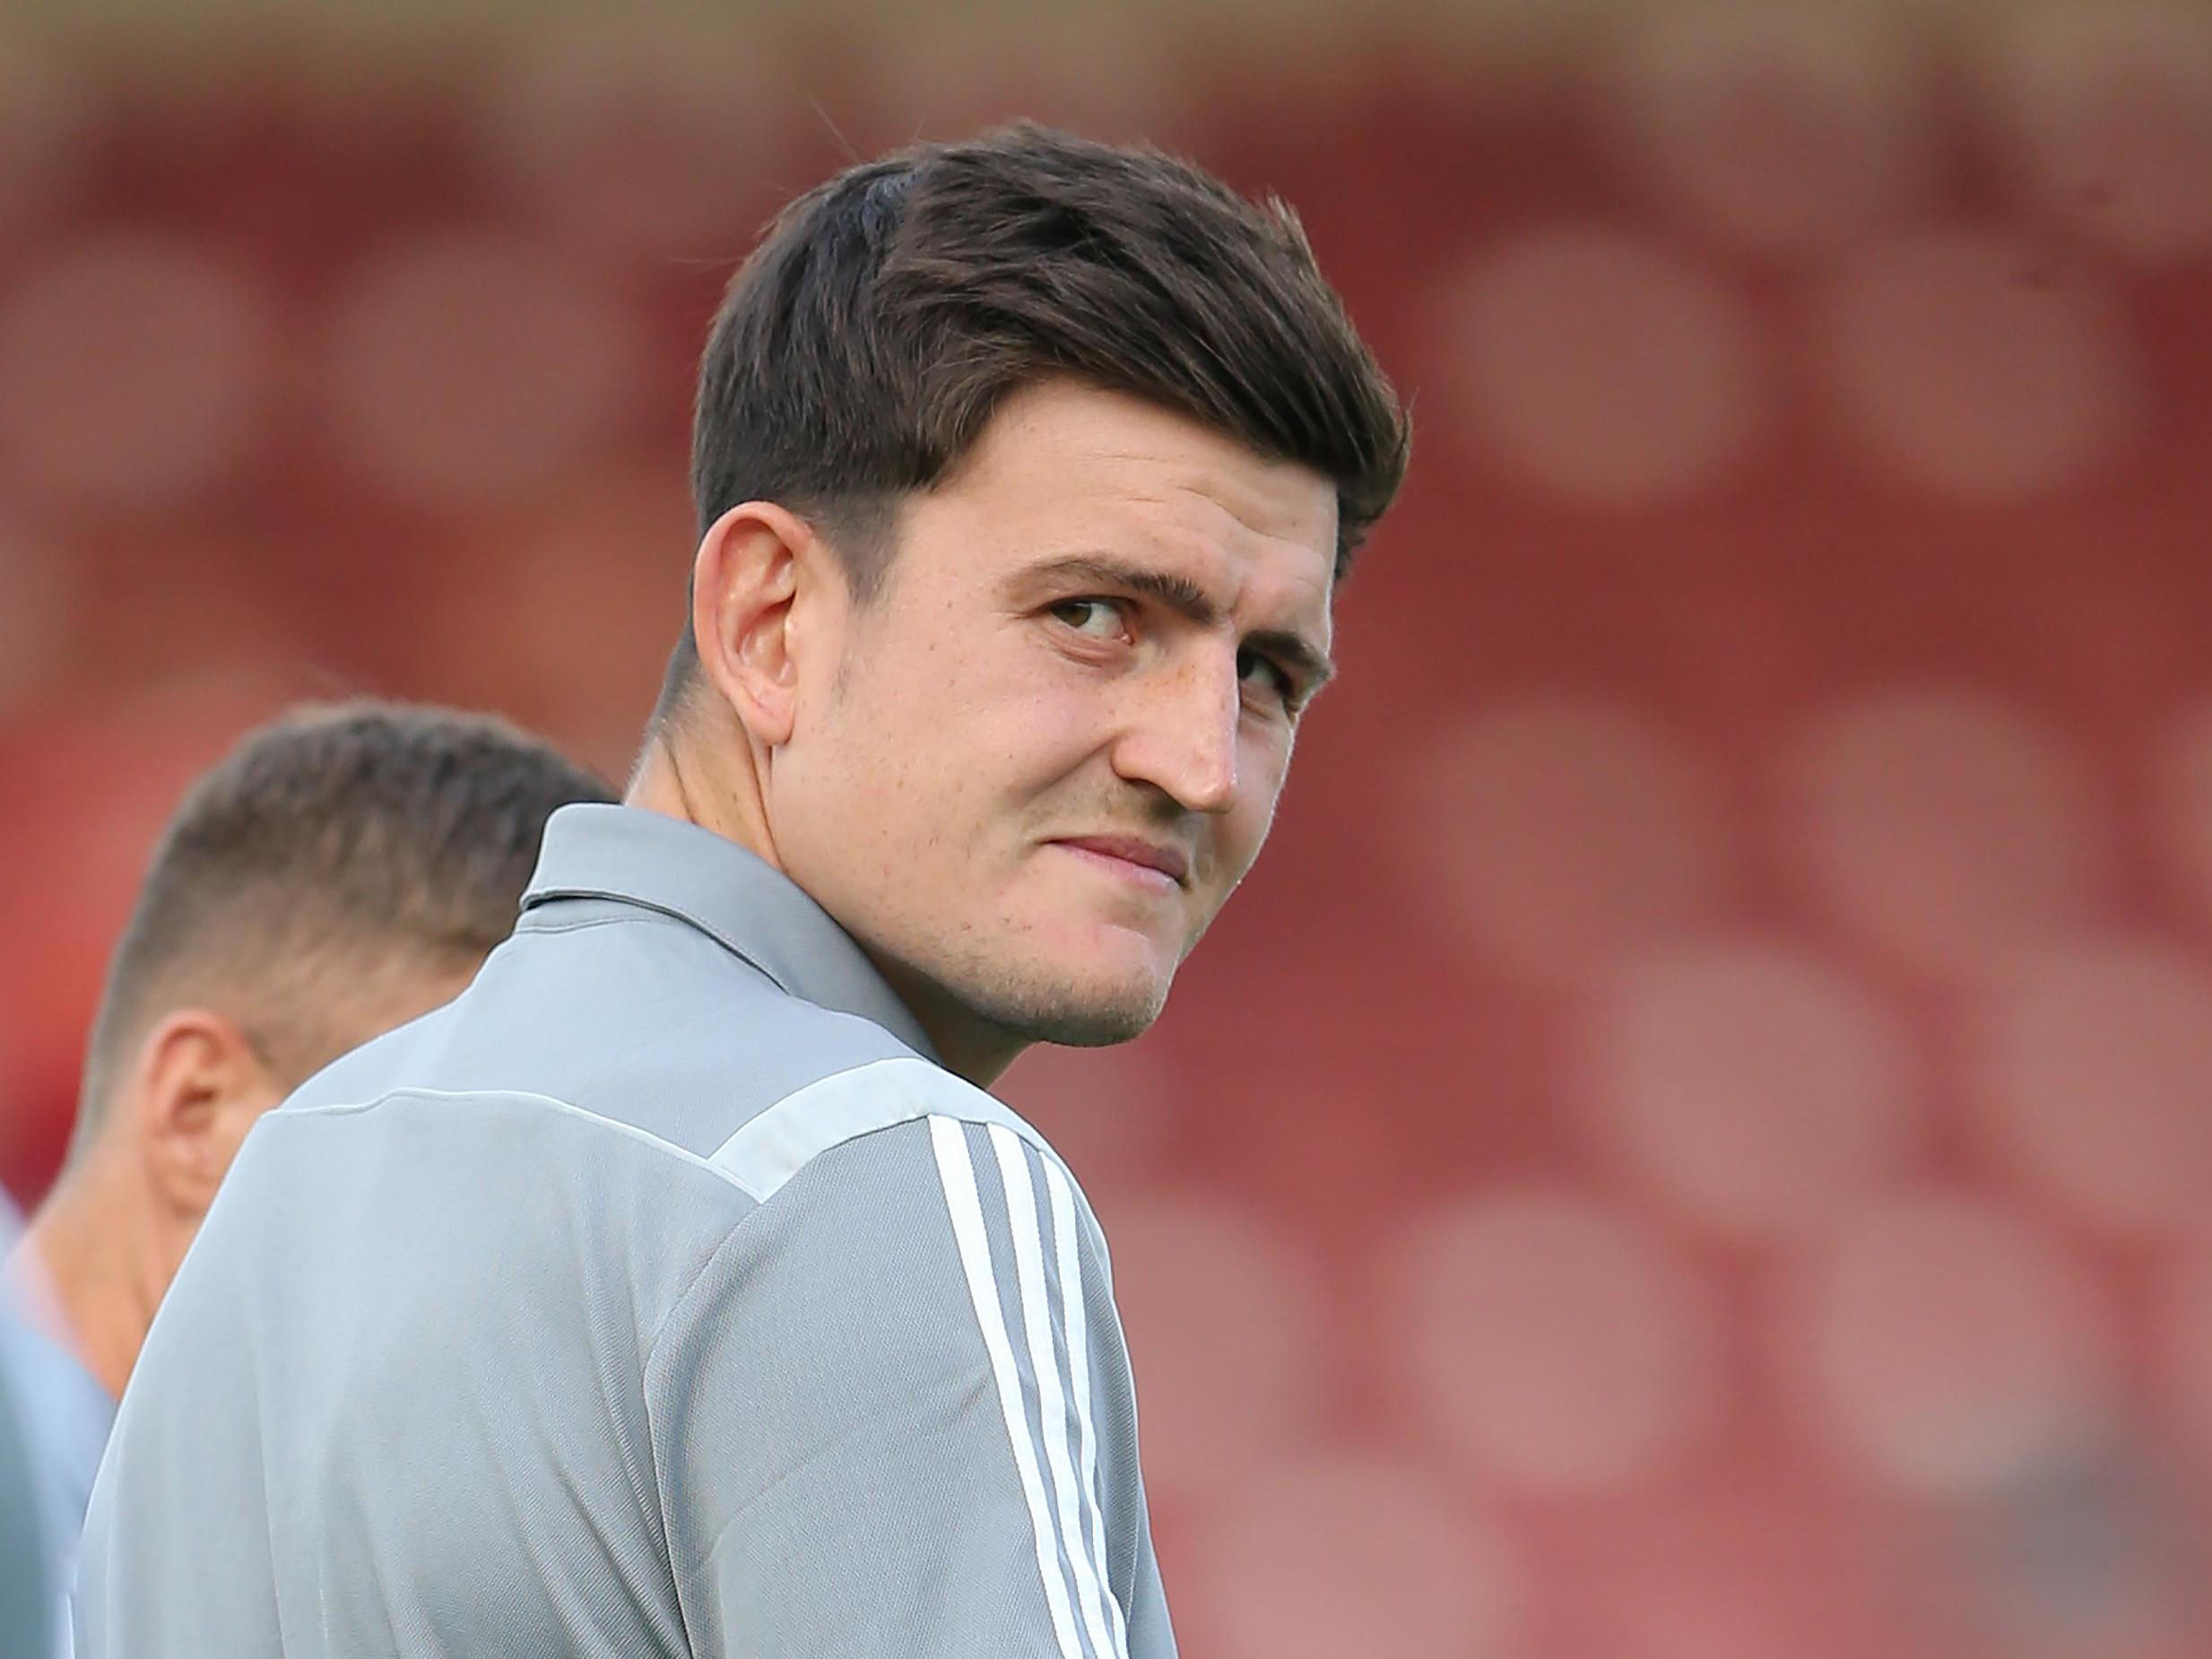 Manchester United transfer news: Harry Maguire signing close after clubs make breakthrough over £80m deal